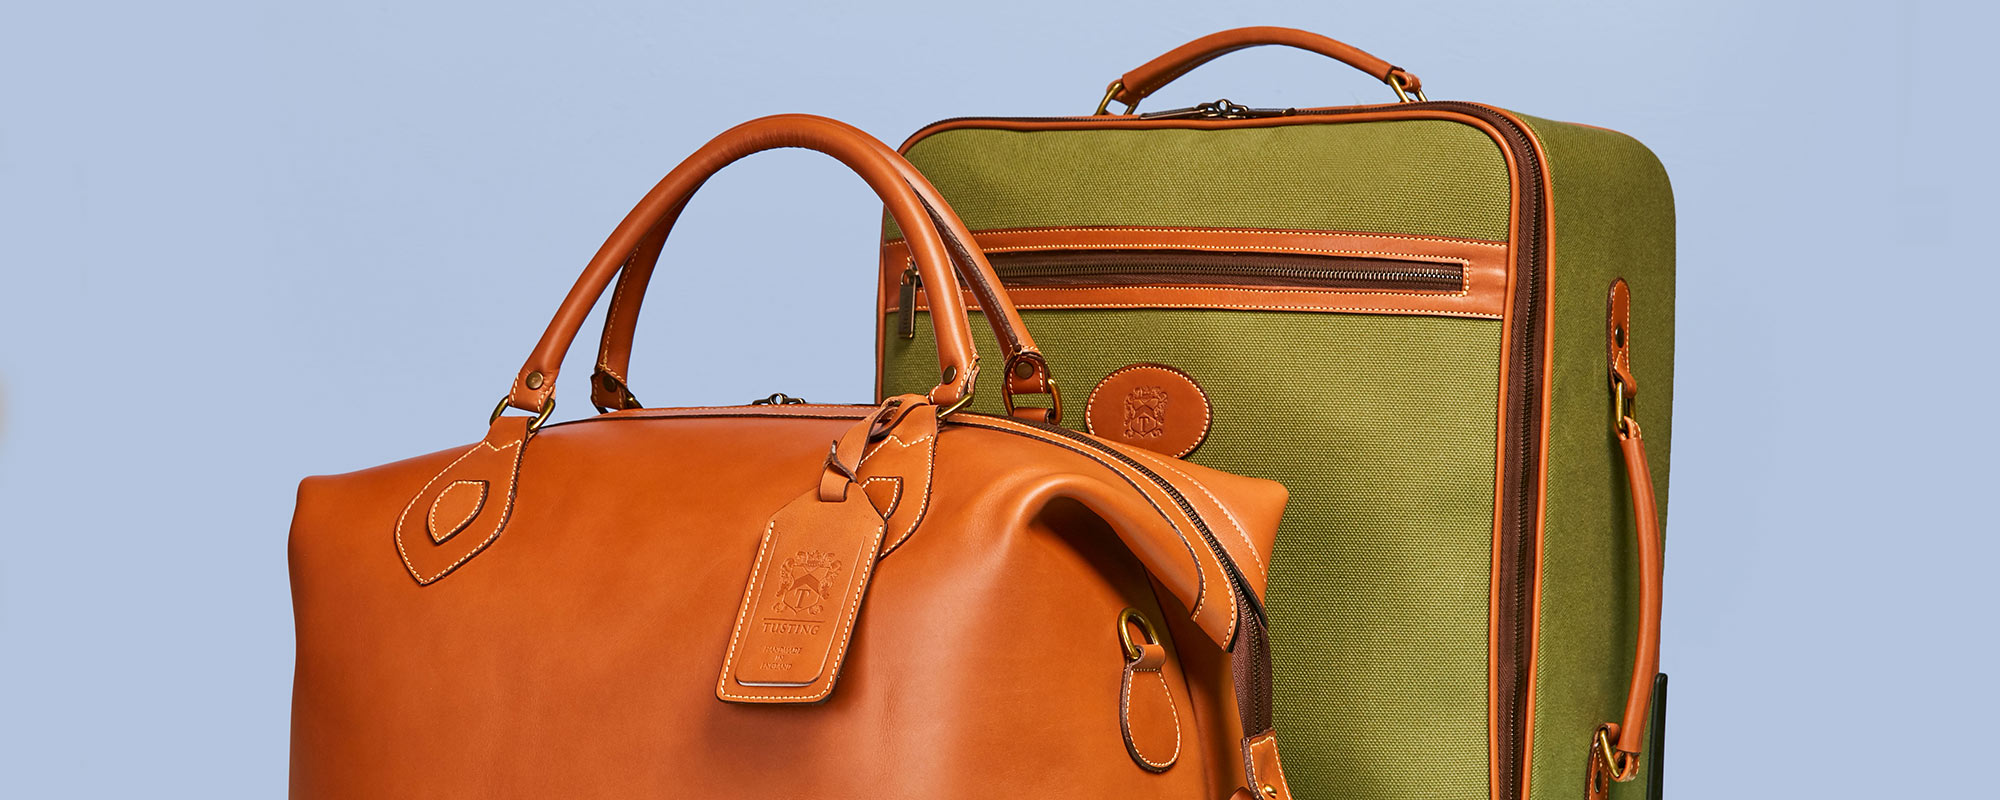 4e3af7e913ad TUSTING Leathergoods - Leather Bags and Handbags - Made in Britain